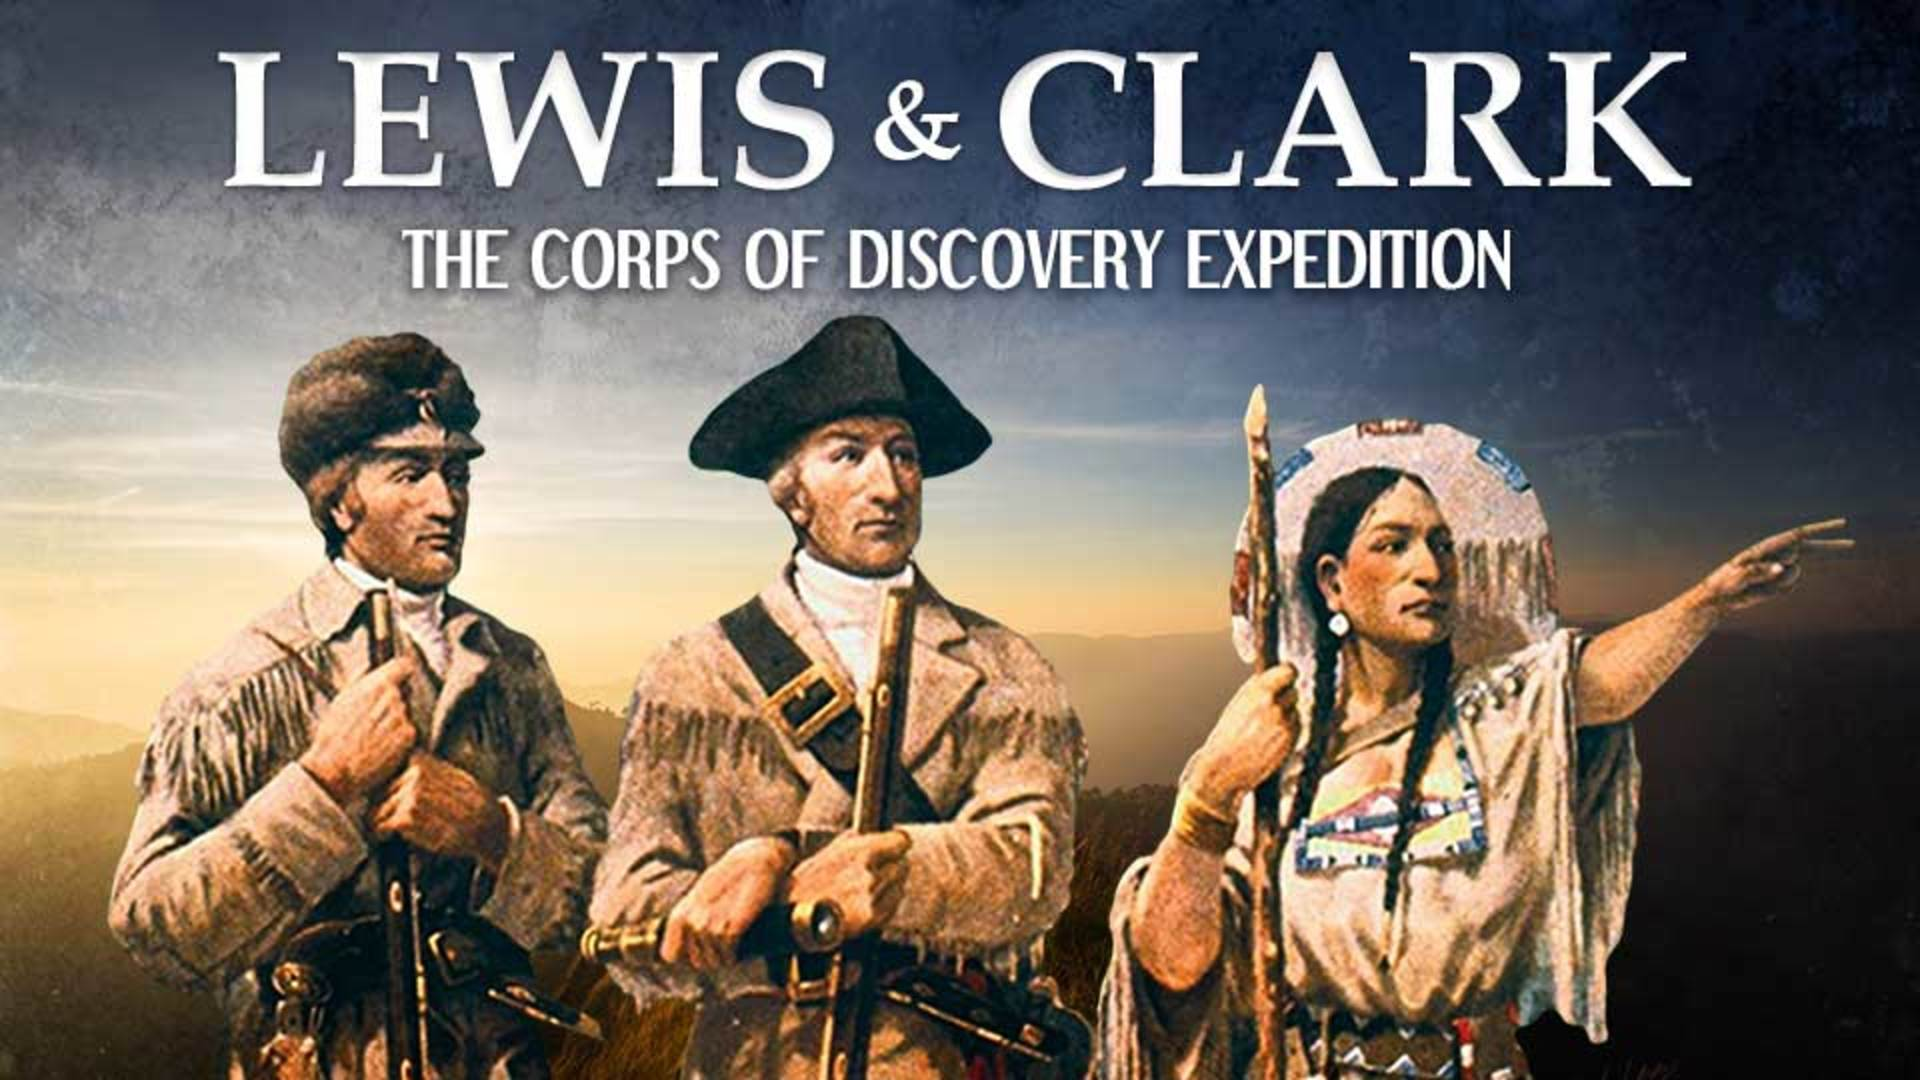 Lewis and Clark: The Corps of Discovery Expedition -